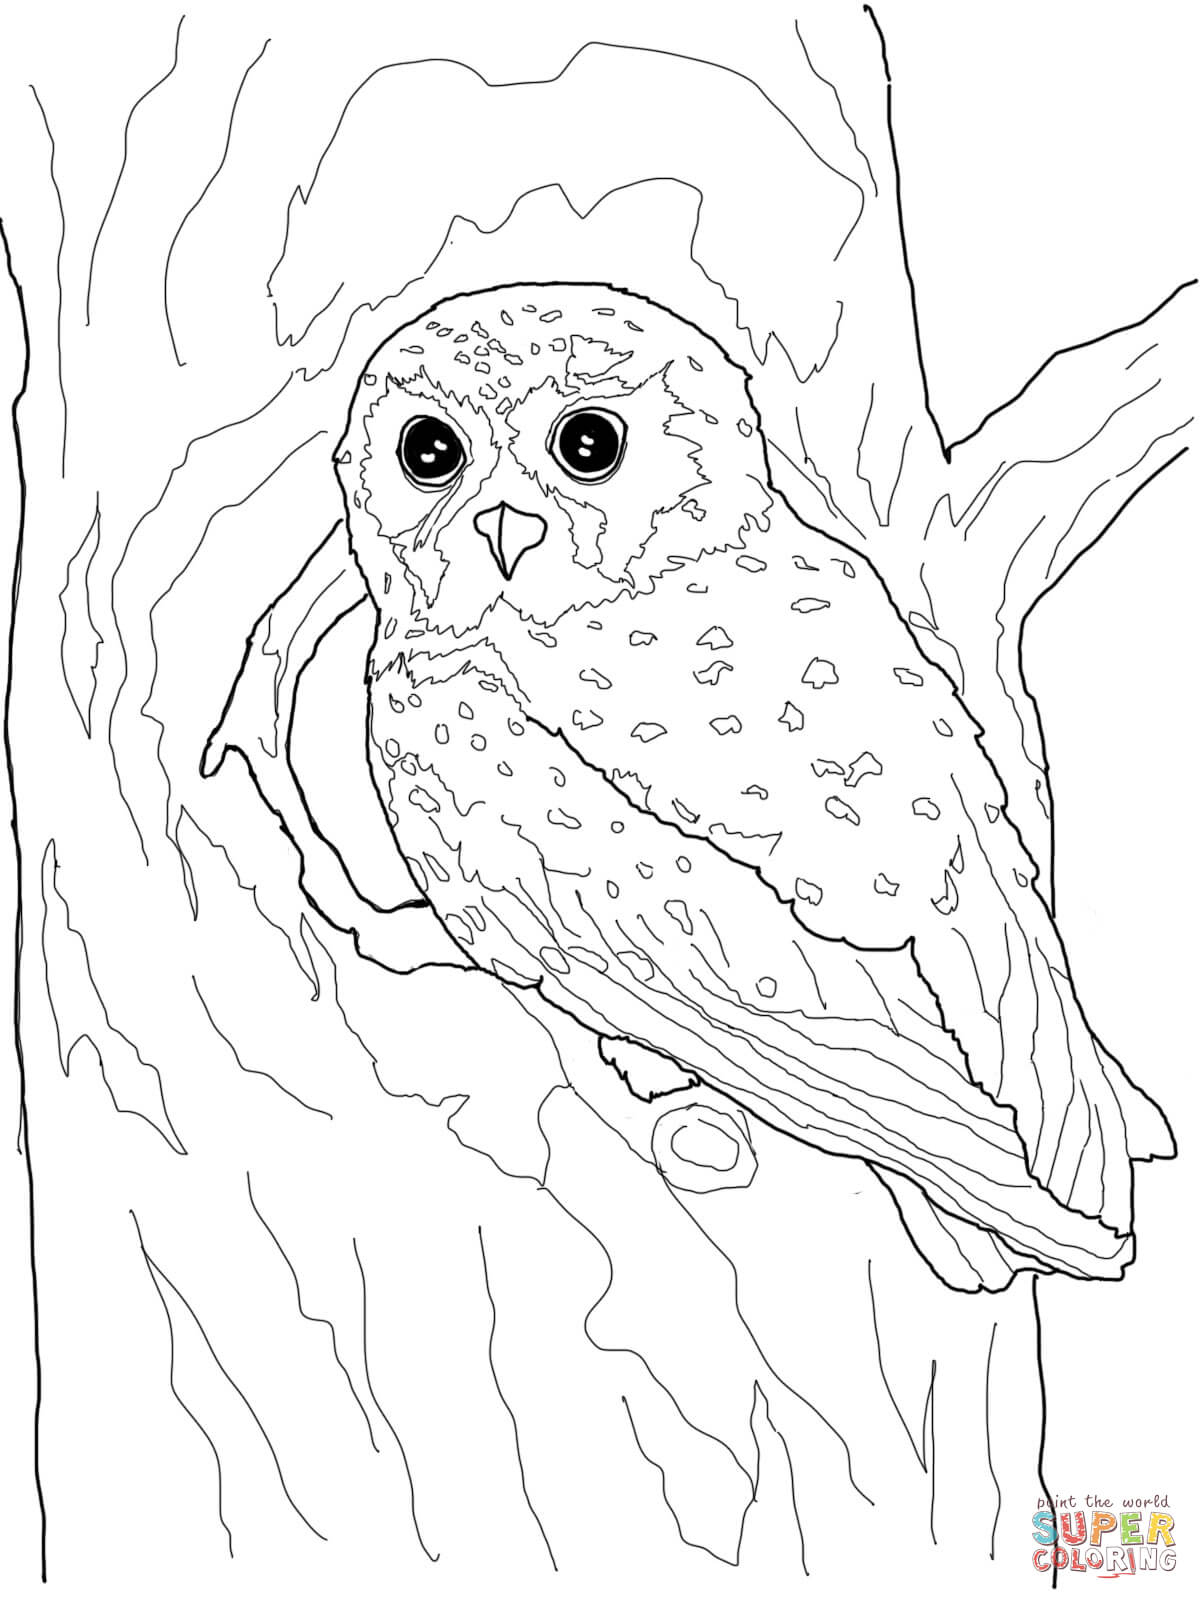 Elf Owl Coloring Page | Free Printable Coloring Pages - Free Printable Owl Coloring Sheets